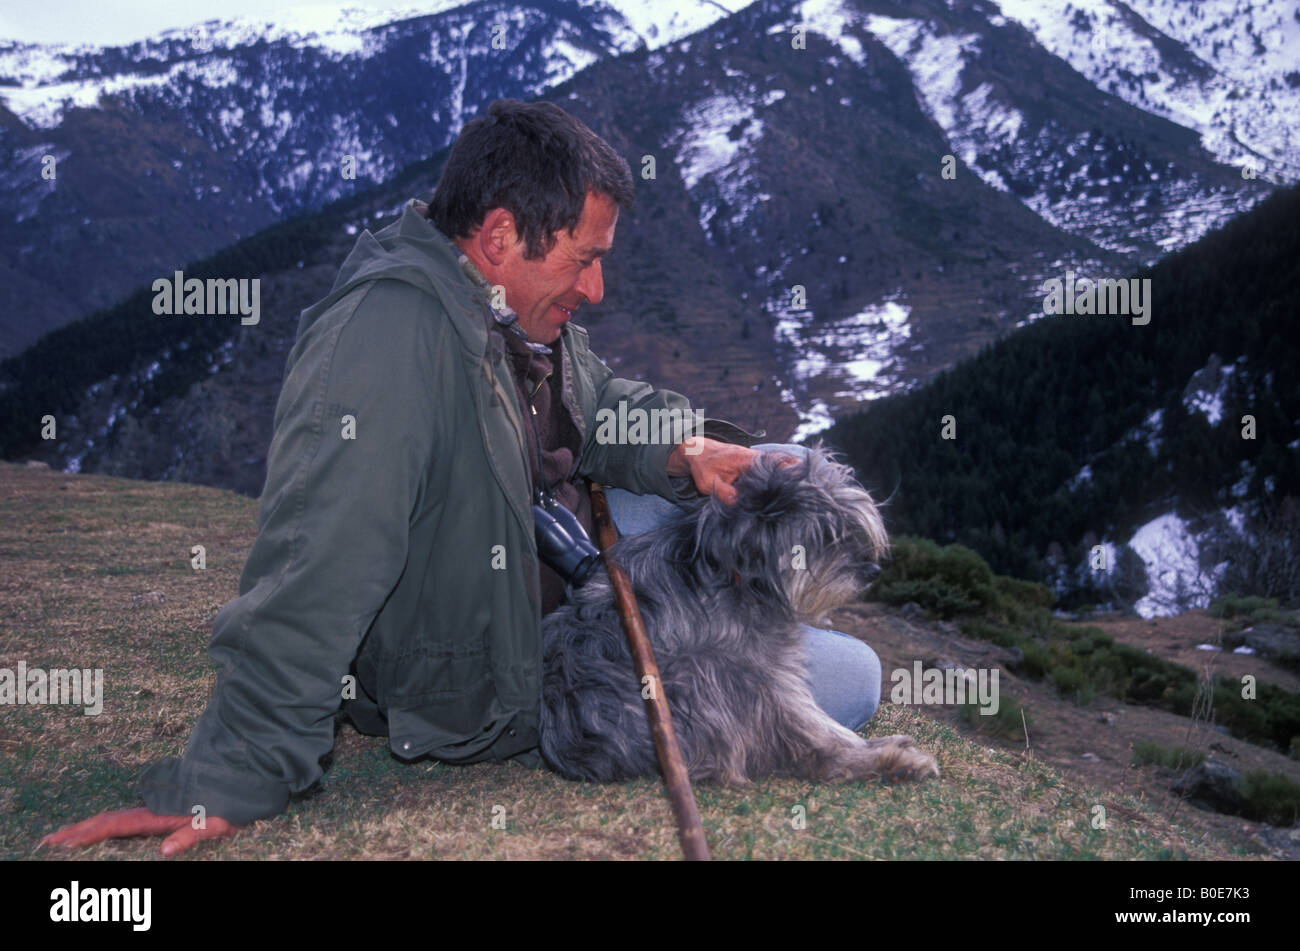 Pyrenean Mountain Dog and Shepherd -- Pyrenees France - Stock Image